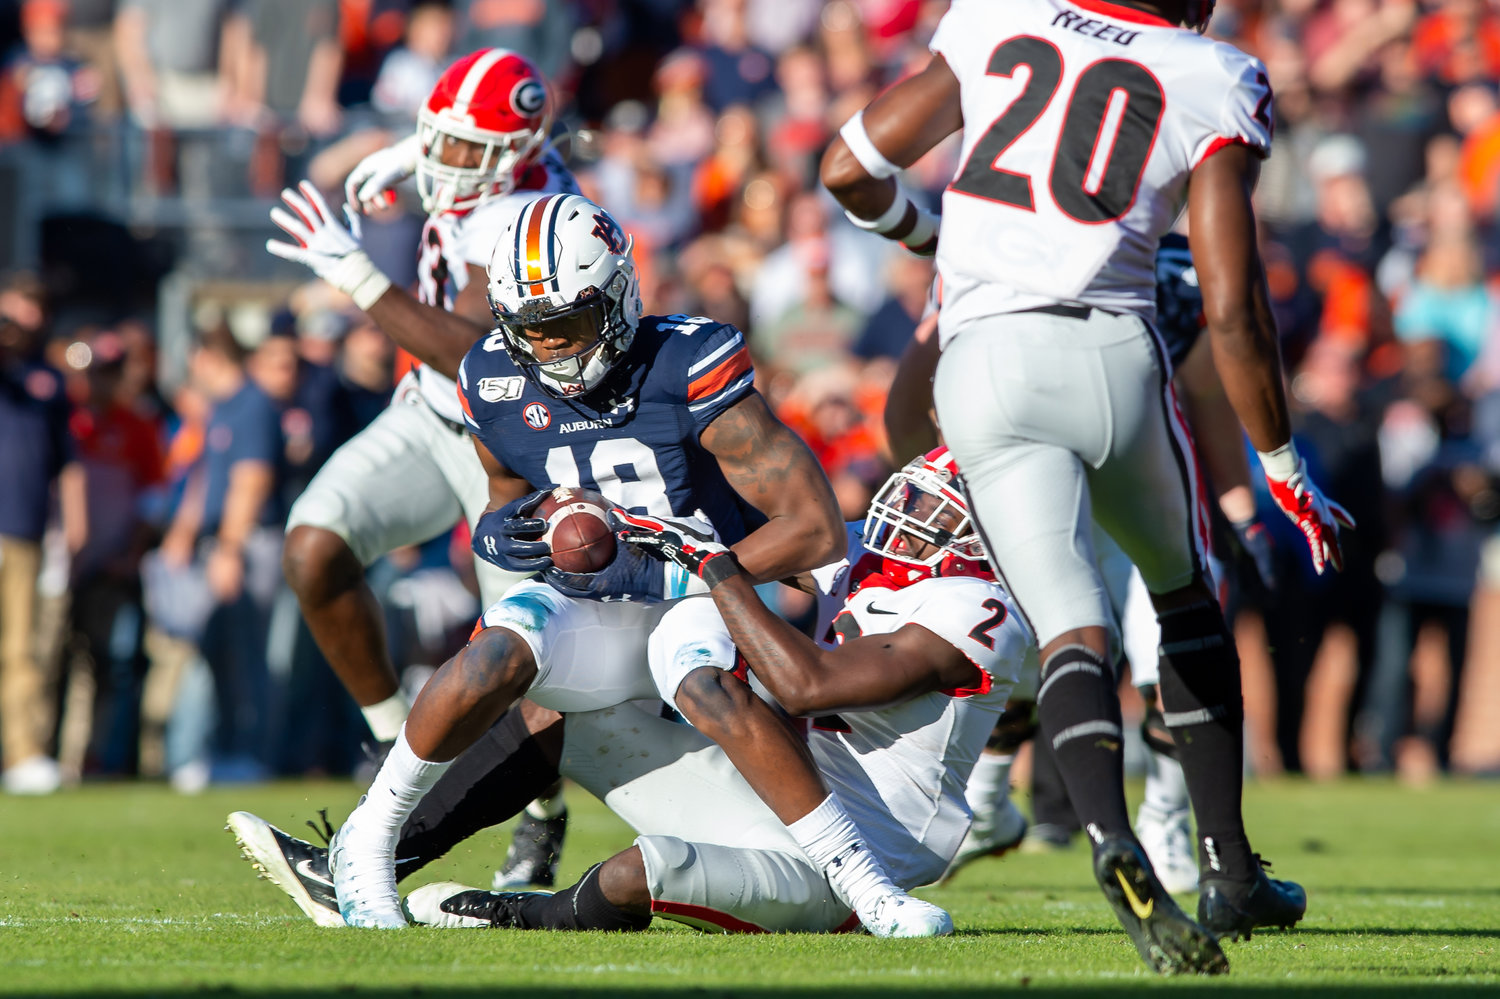 Auburn Tigers wide receiver Seth Williams (18) makes a catch in front of Georgia Bulldogs defensive back Richard LeCounte (2) during the first half of Saturday's game, at Jordan-Hare Stadium in Auburn,, AL. Daily Mountain Eagle -  Jeff Johnsey